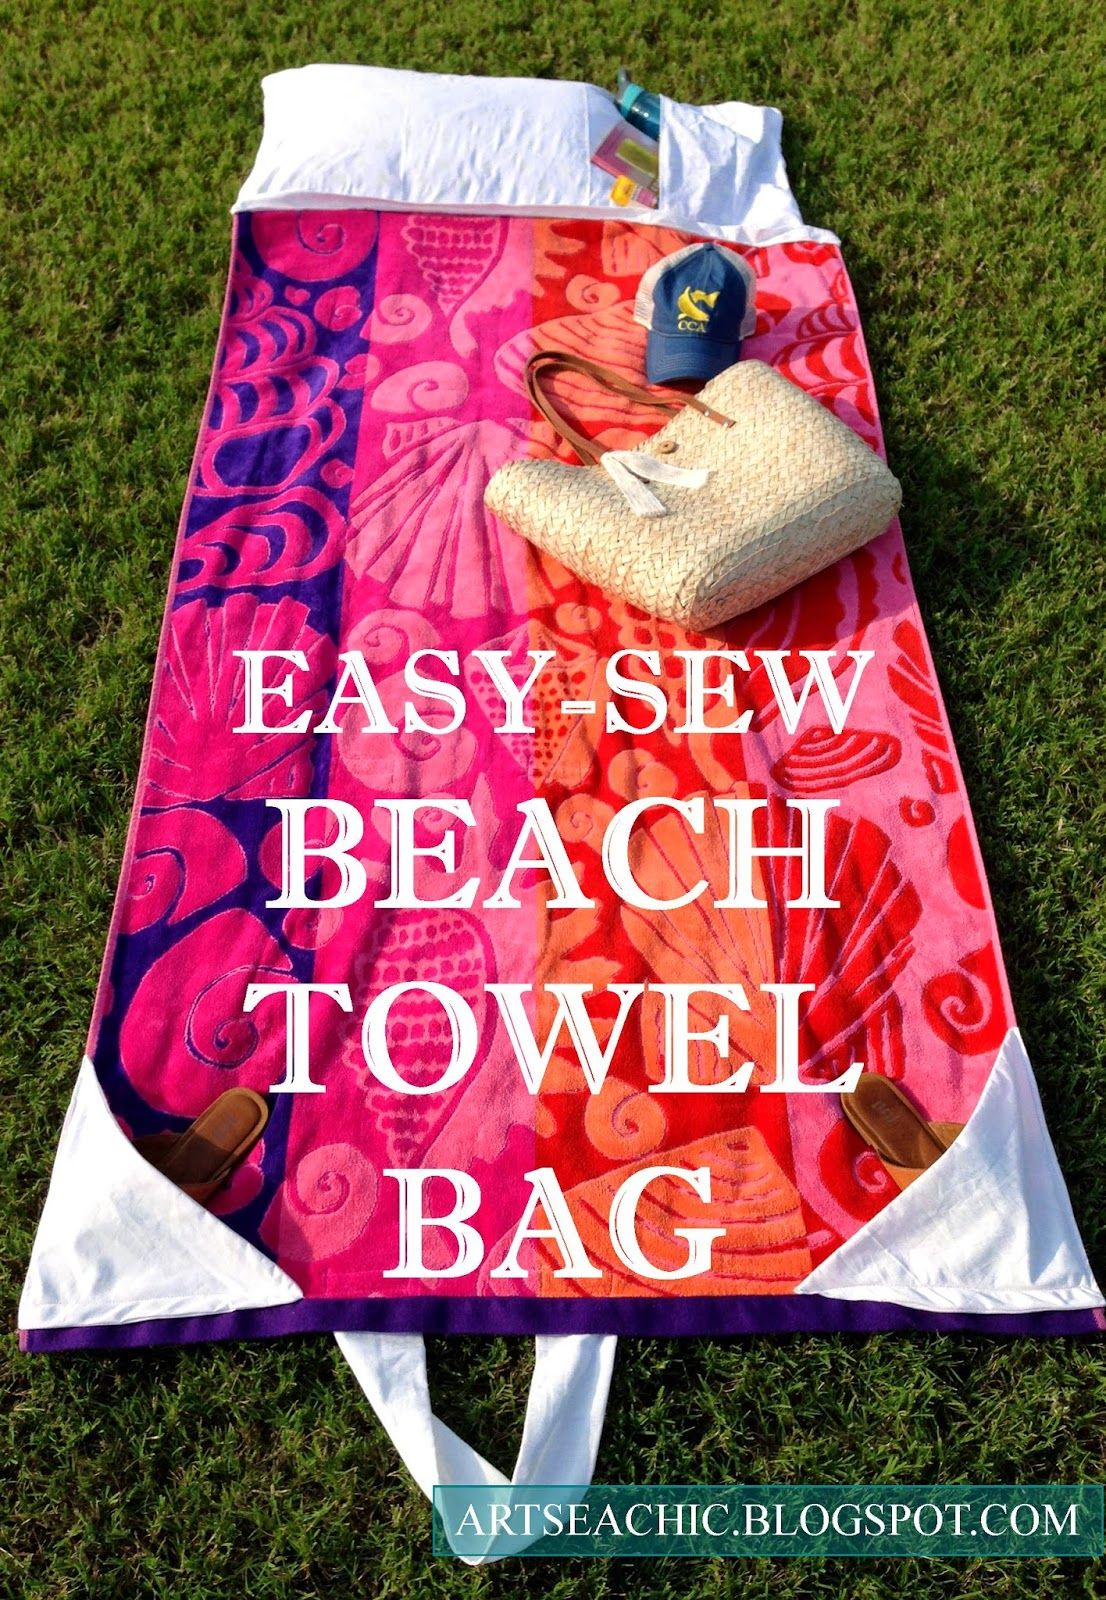 Beach bag do it yourself from the towel - master class